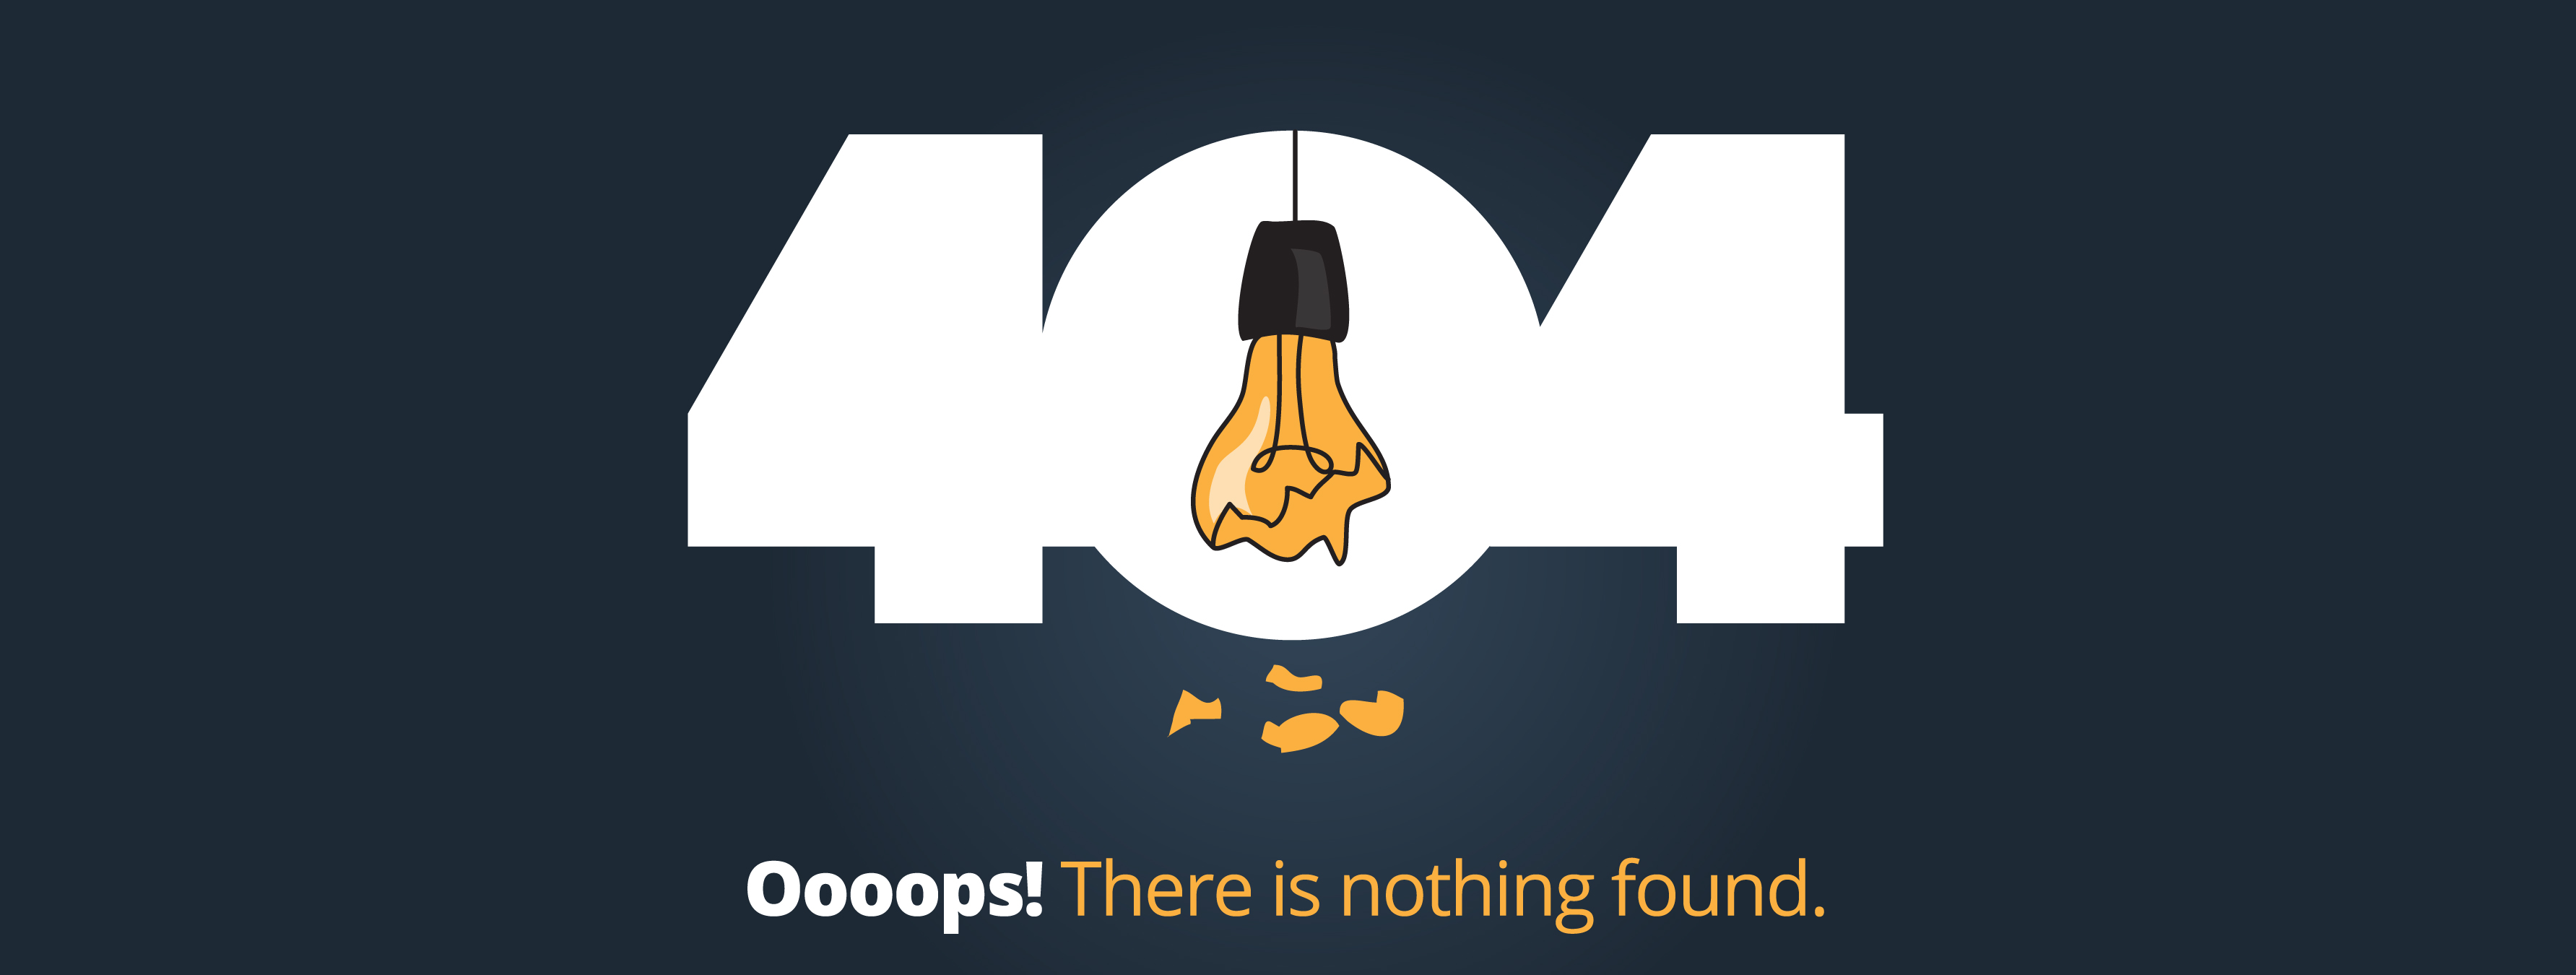 404. Broken lightbulb. Oooops! There is nothing found.